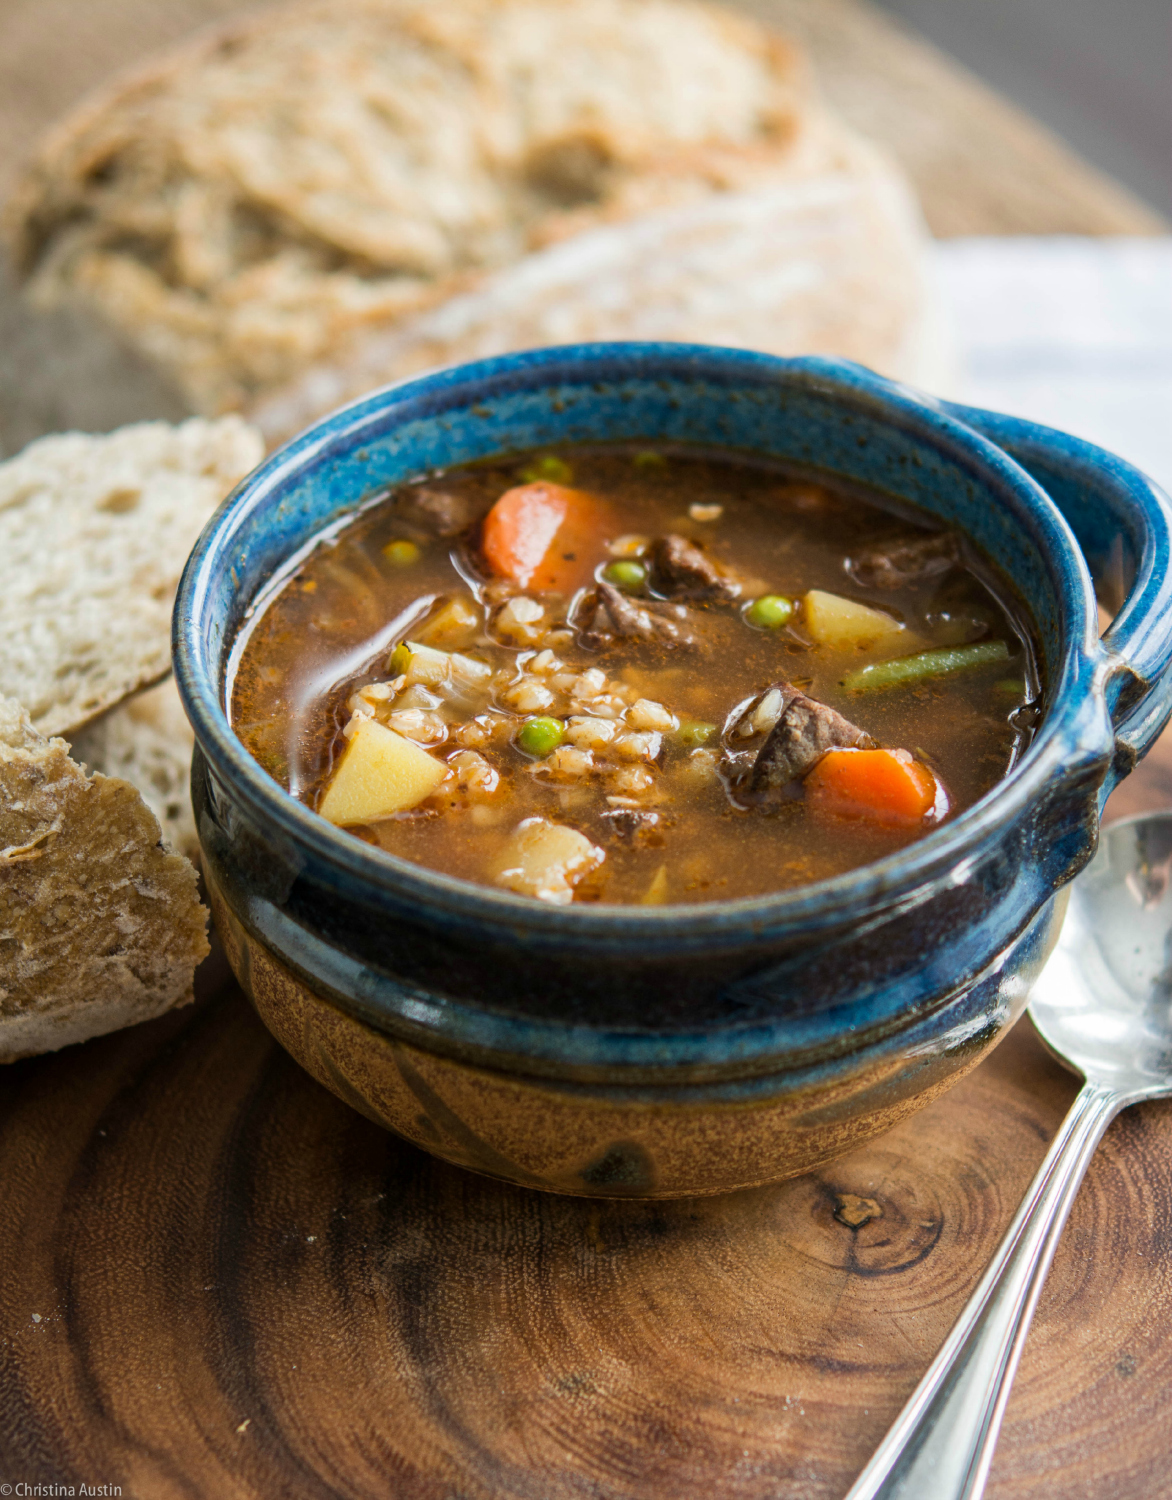 Beef, Vegetable, and Buckwheat Soup